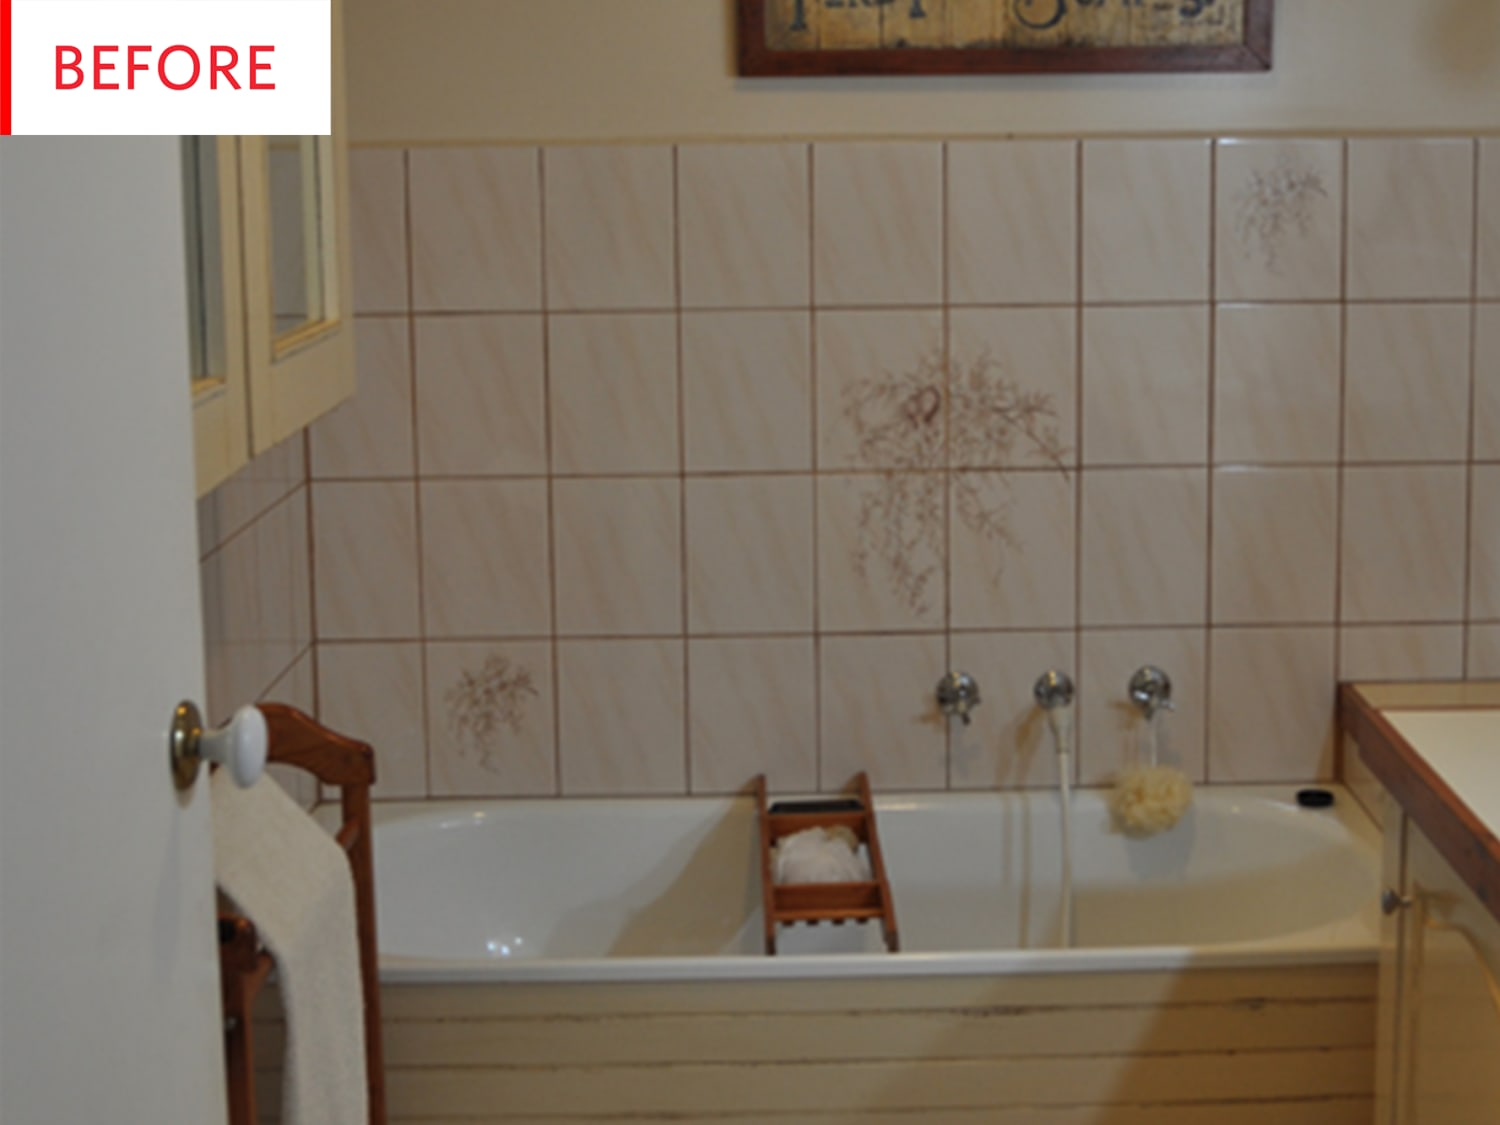 Diy Bathroom Remodel Tile Paint Before After Apartment Therapy